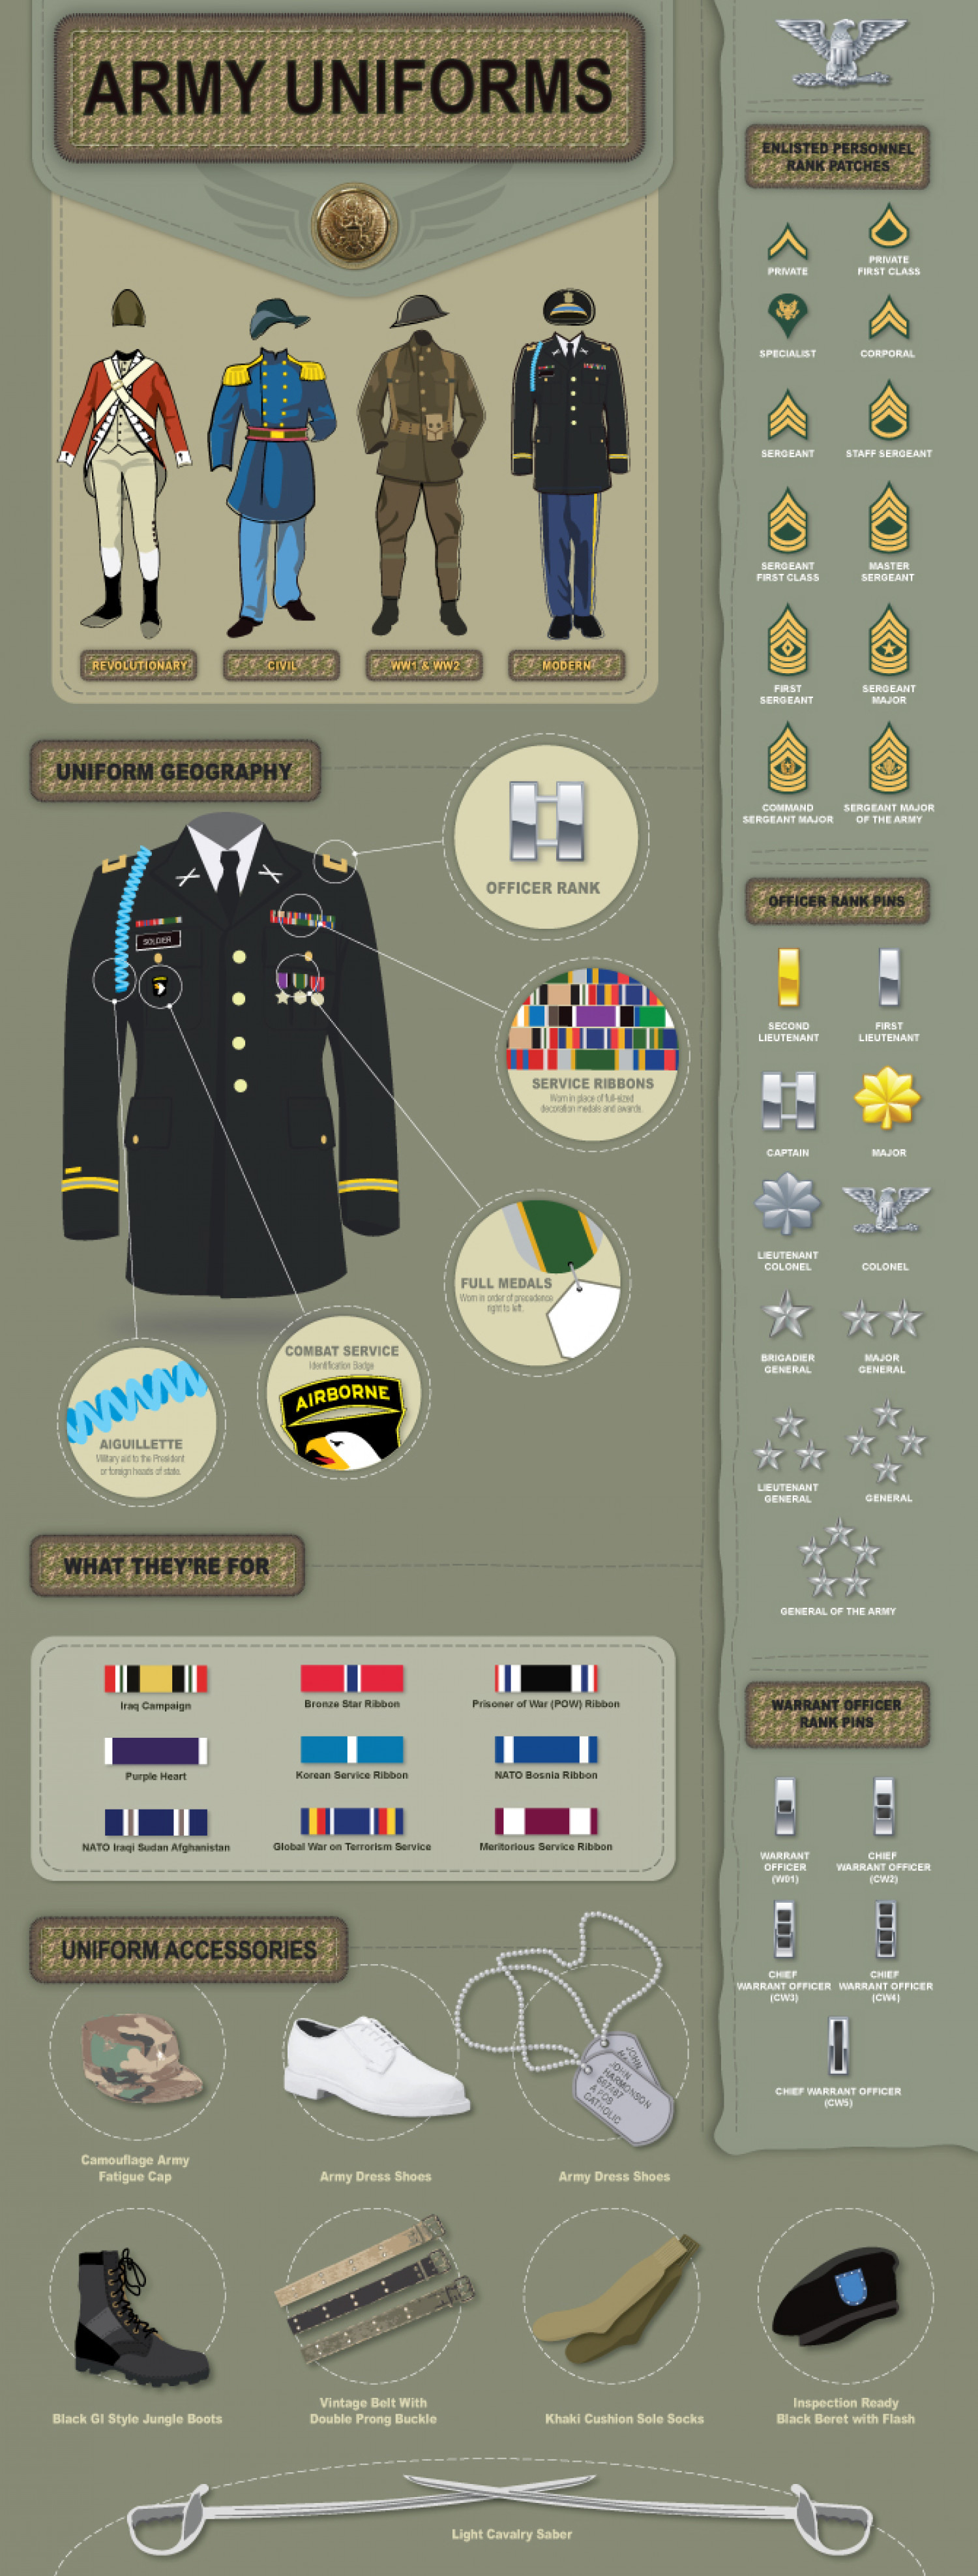 Military Uniform Infographic